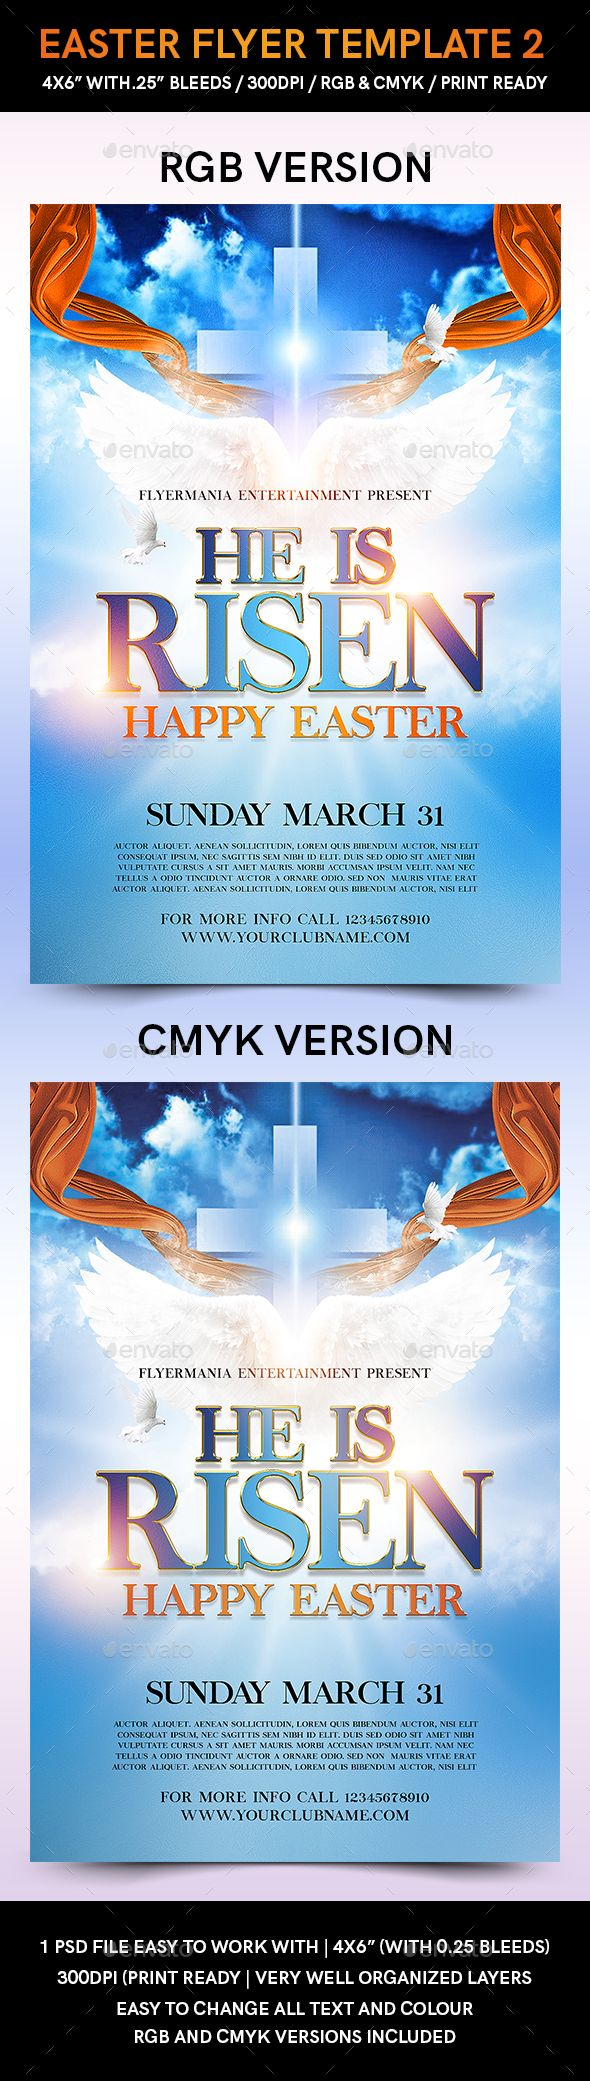 Easter Flyer Template 2 | Flyer Template, Flyer Printing And Print Templates